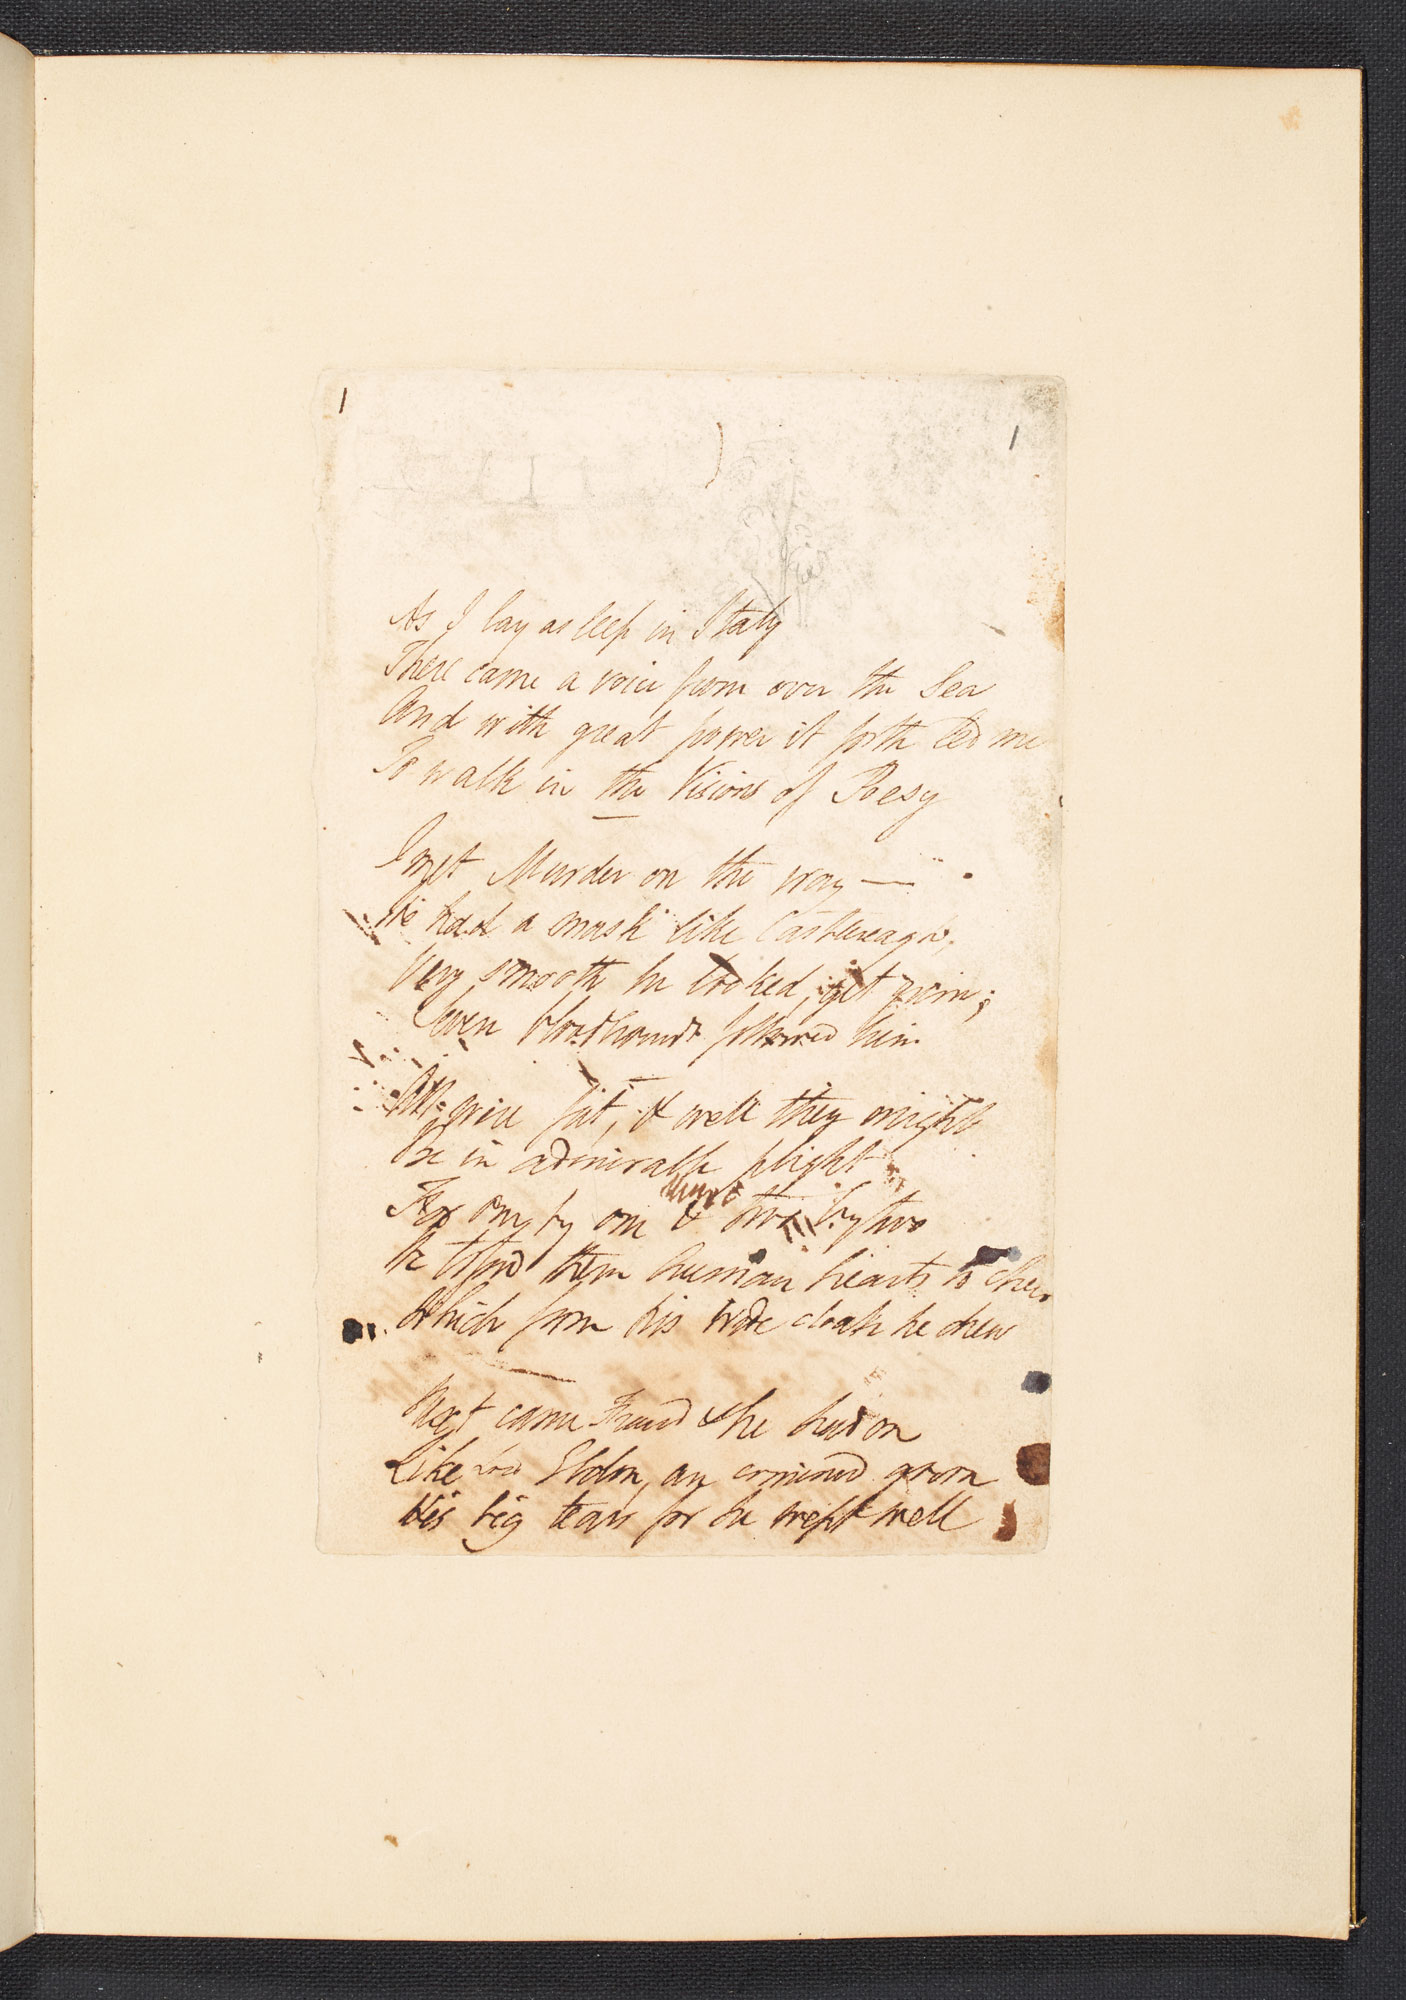 Manuscript of P B Shelley's 'The Masque of Anarchy'